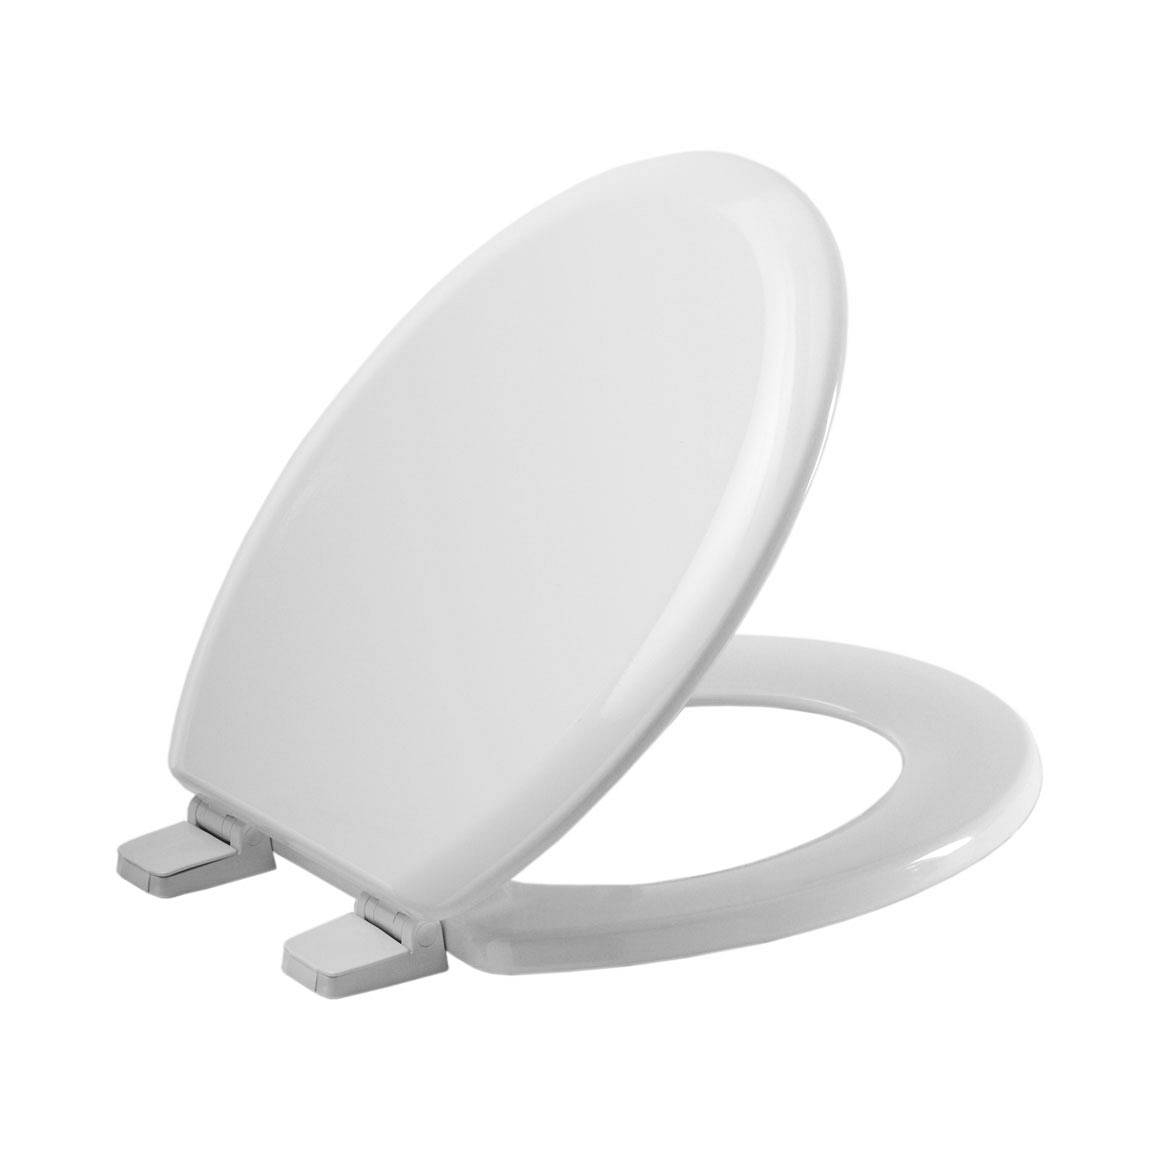 Image of White Wooden Toilet Seat